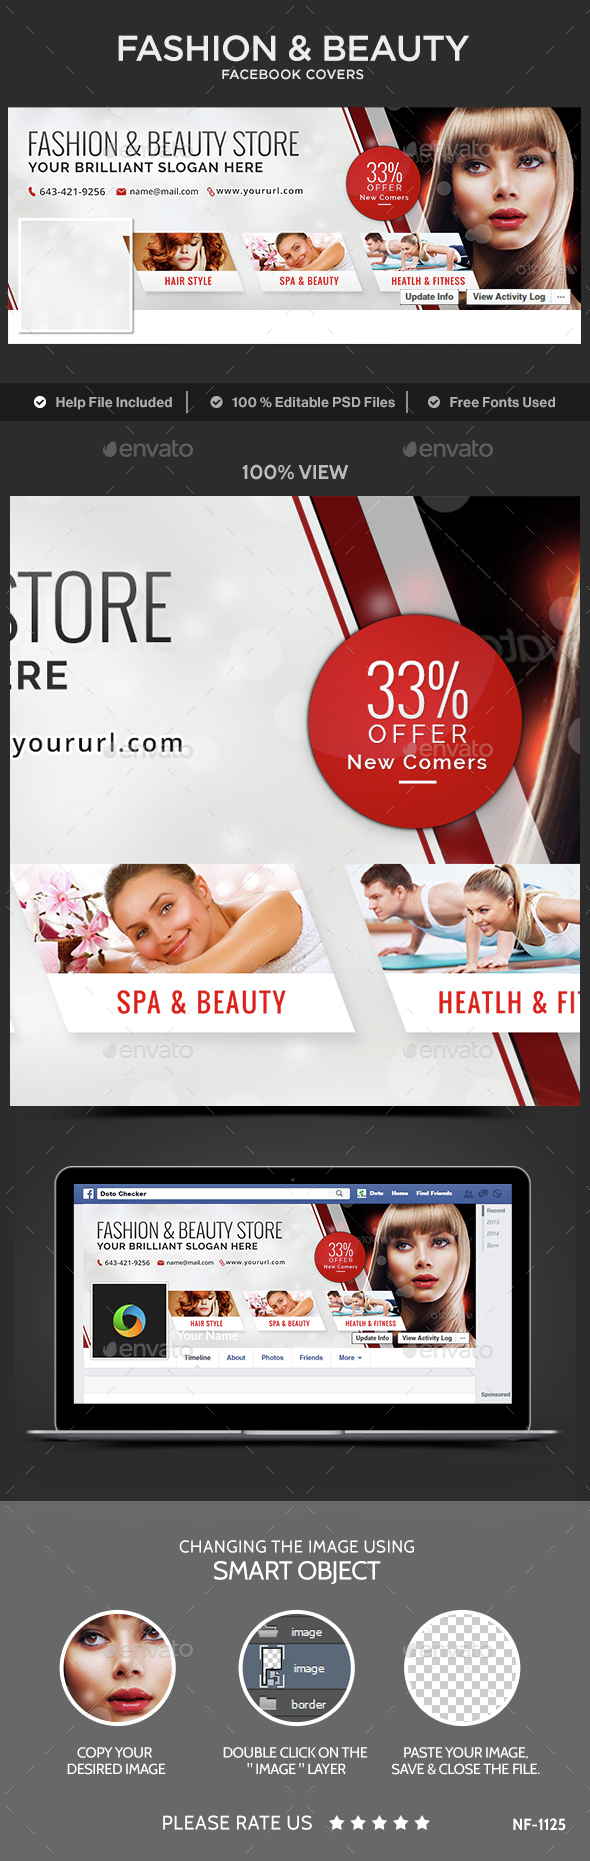 Fashion Beauty Facebook Cover Template Psd Download Here Http